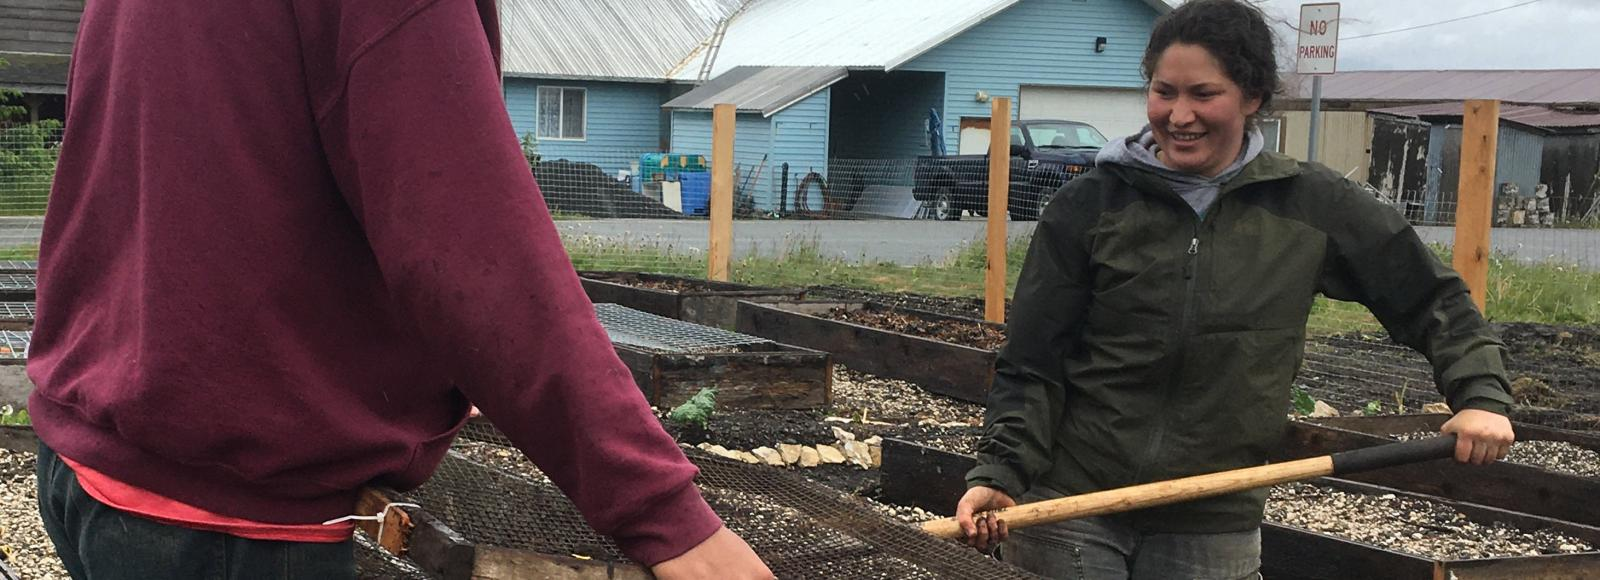 A smiling woman shovels dirt into a sift near some raised garden beds.